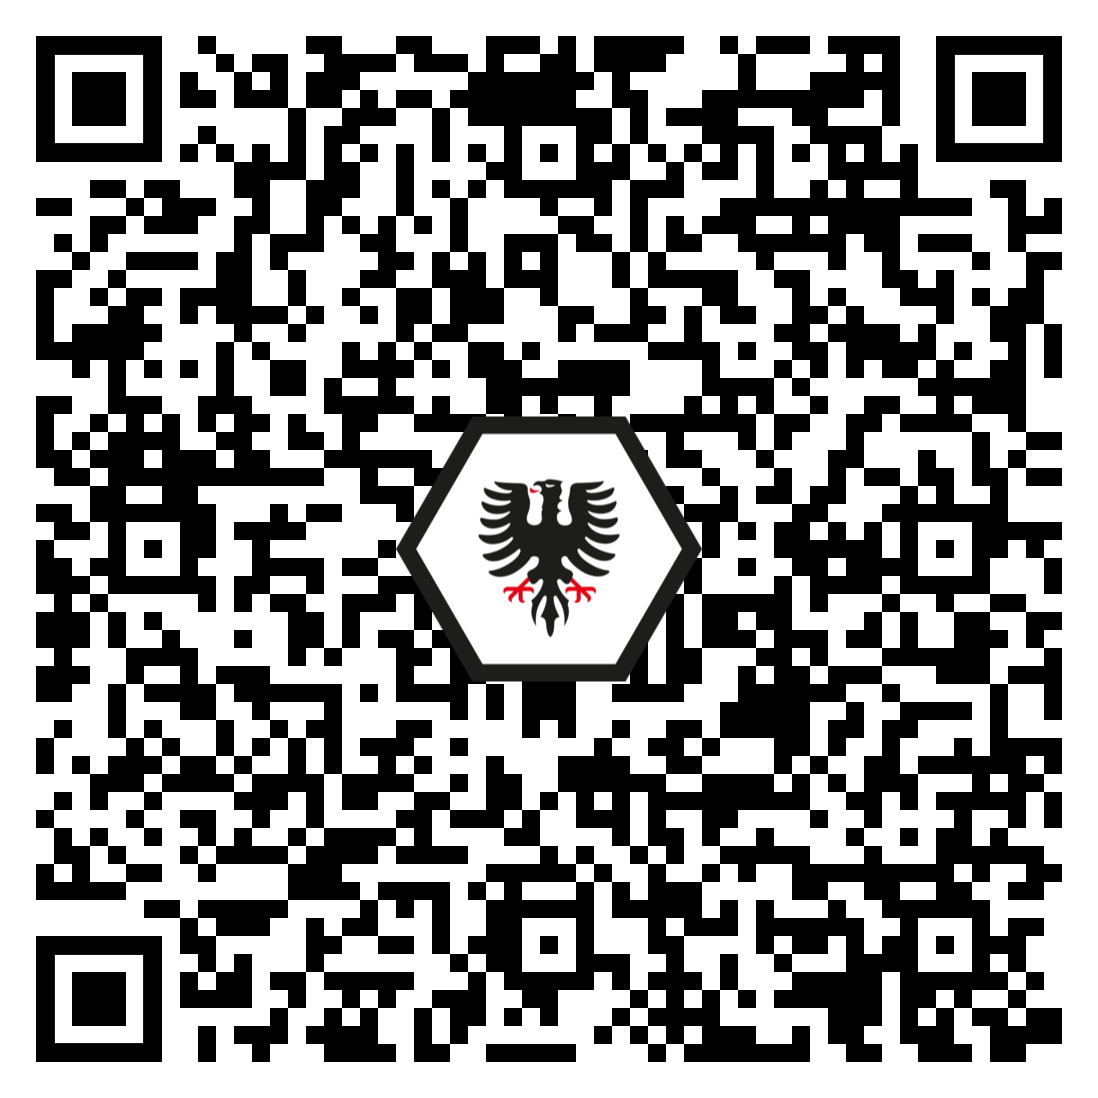 qrcodematchball